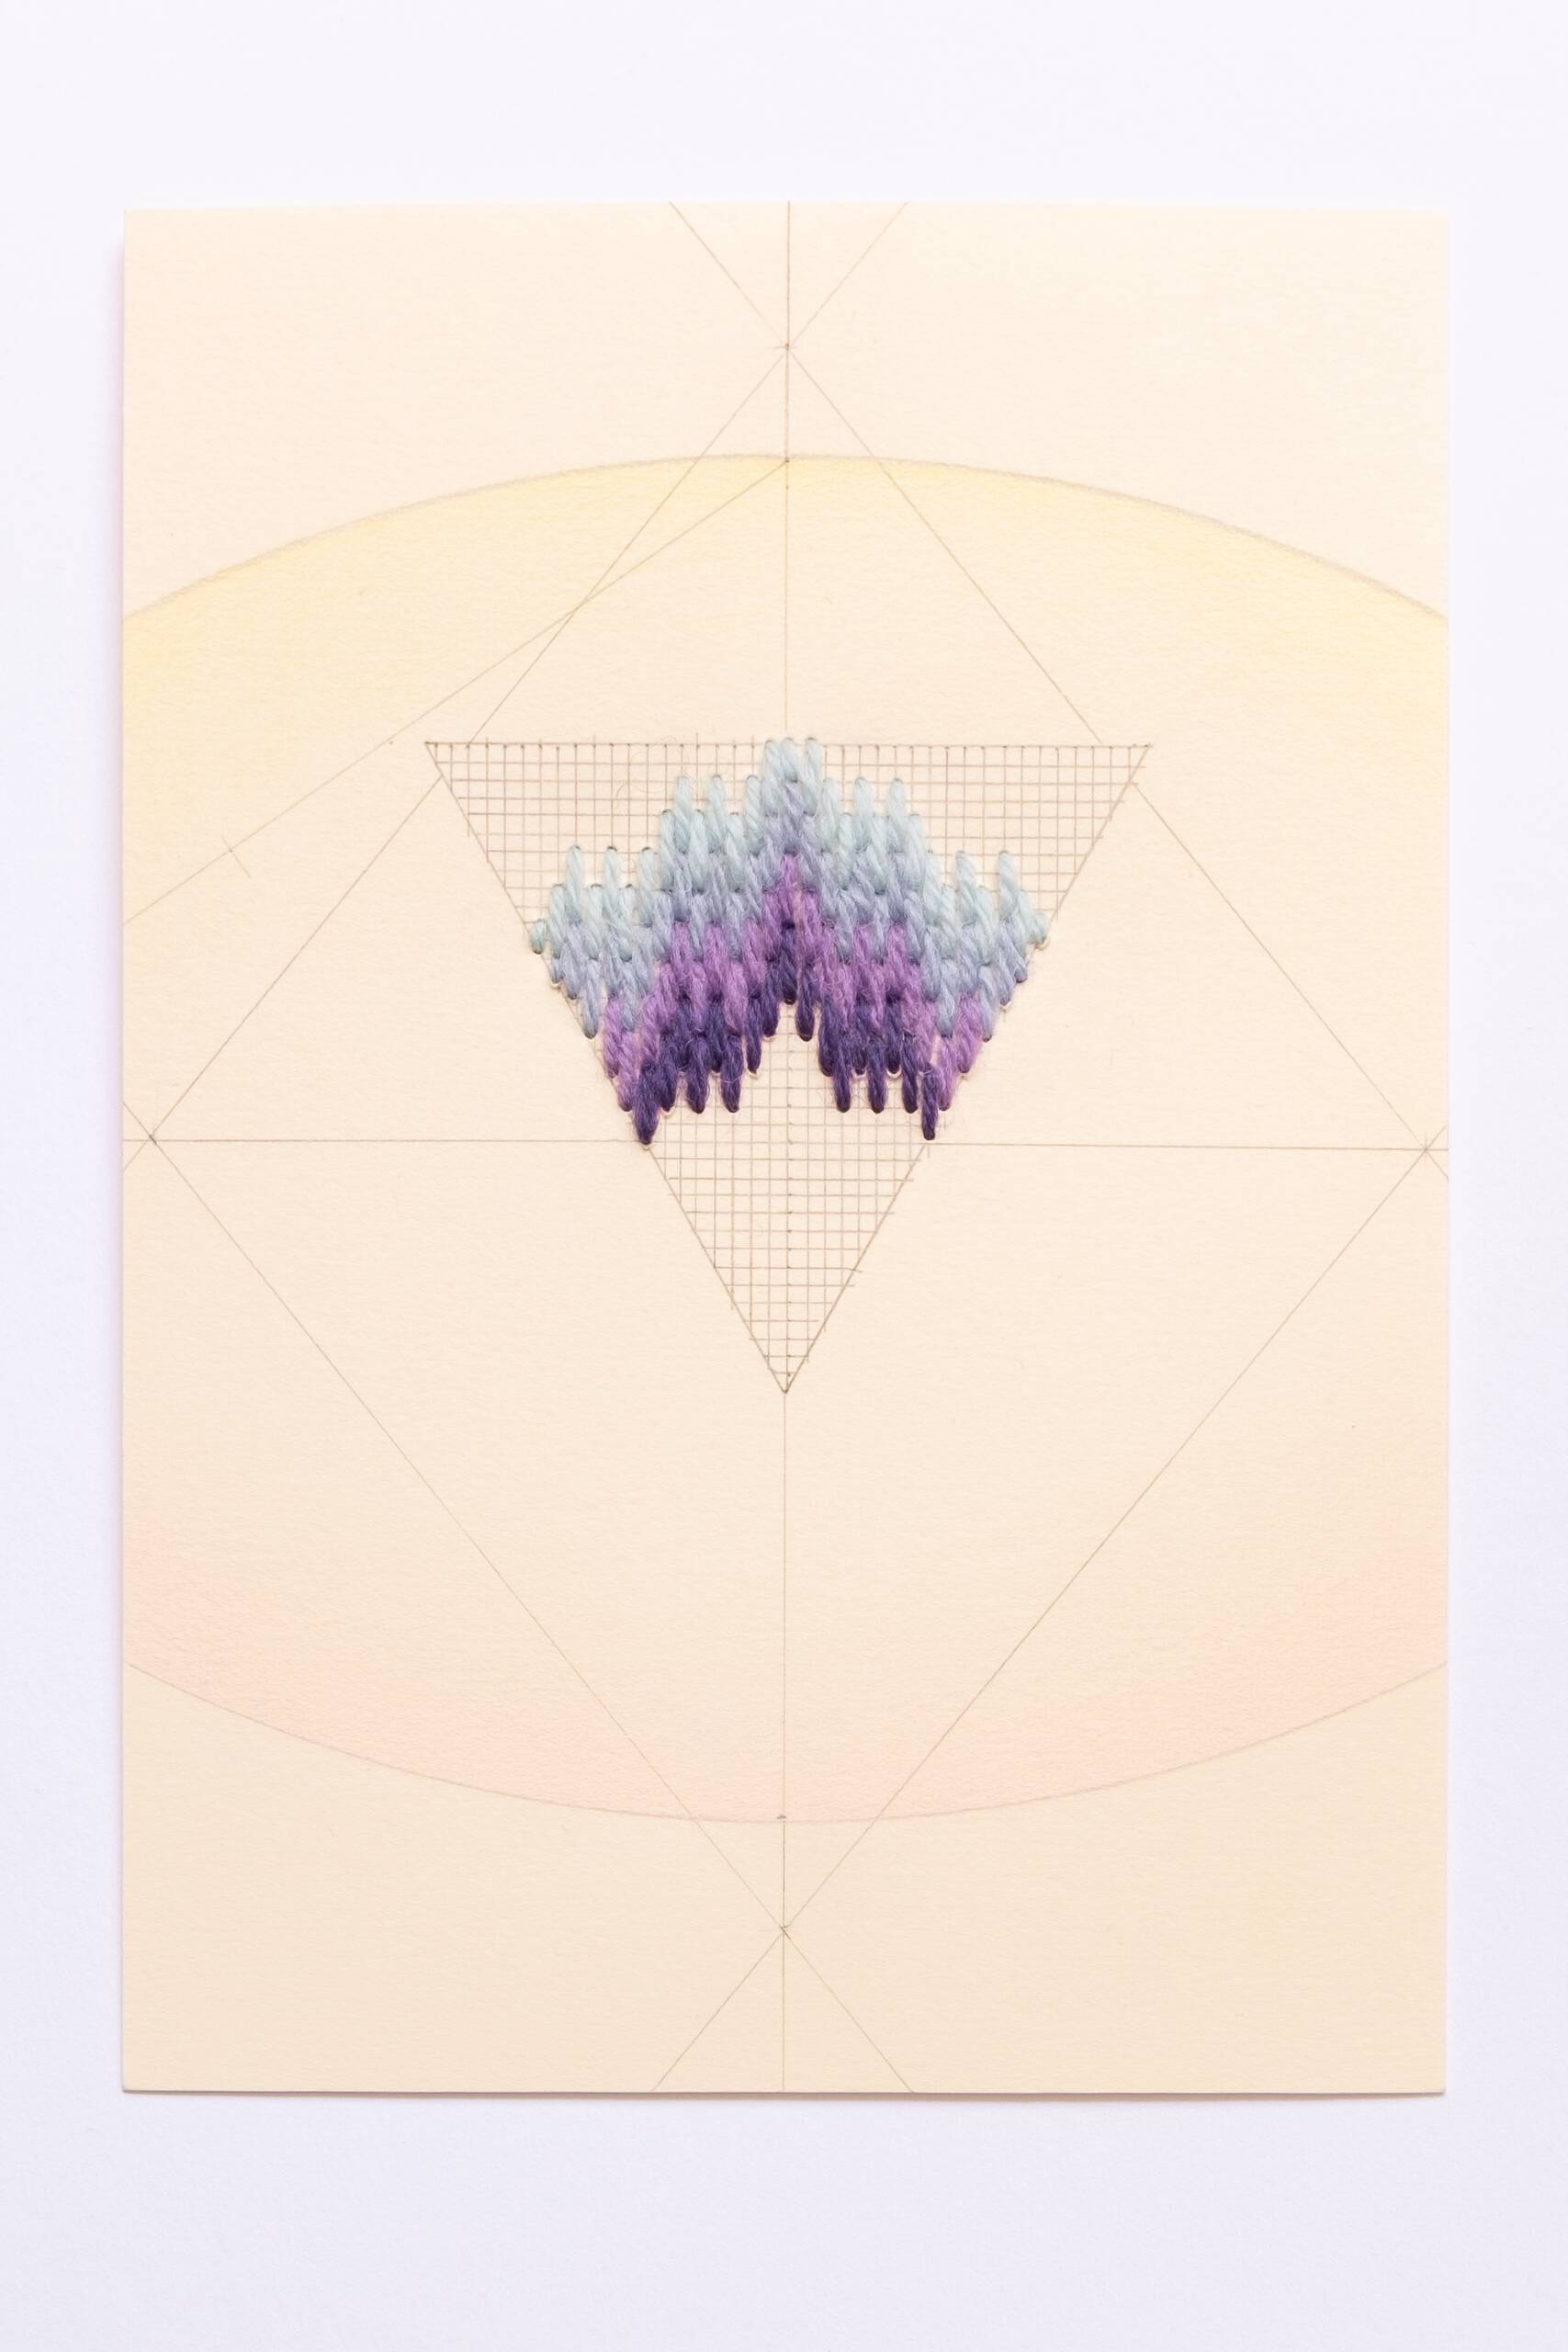 Bargello triangle [periwinkle-purple on peach], Hand-embroidered wool, pencil and colored pencil on paper, 2020